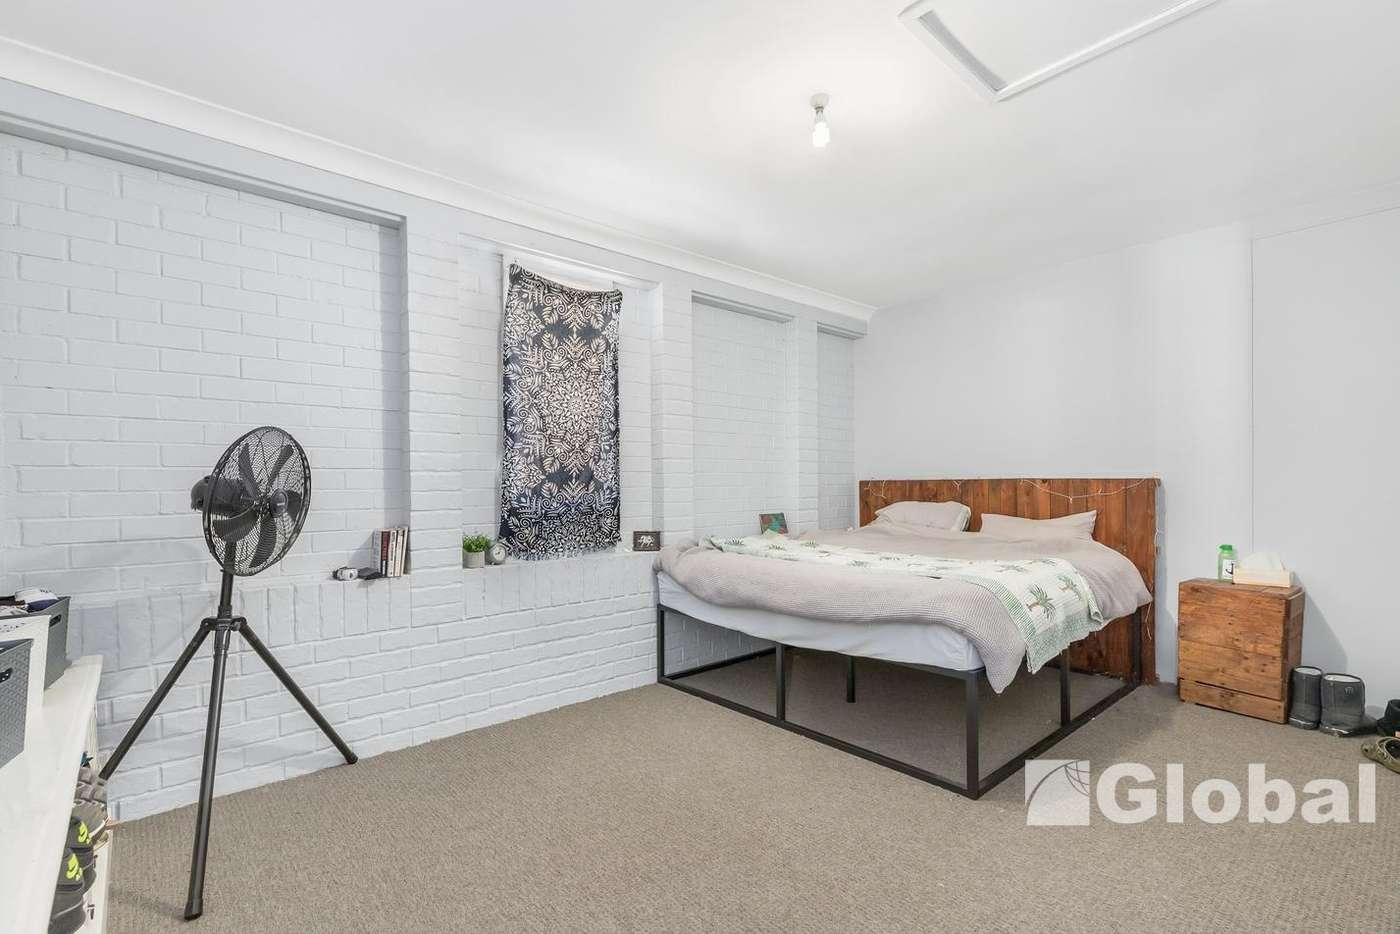 Fifth view of Homely villa listing, 5/3 Lovell Parade, Shortland NSW 2307